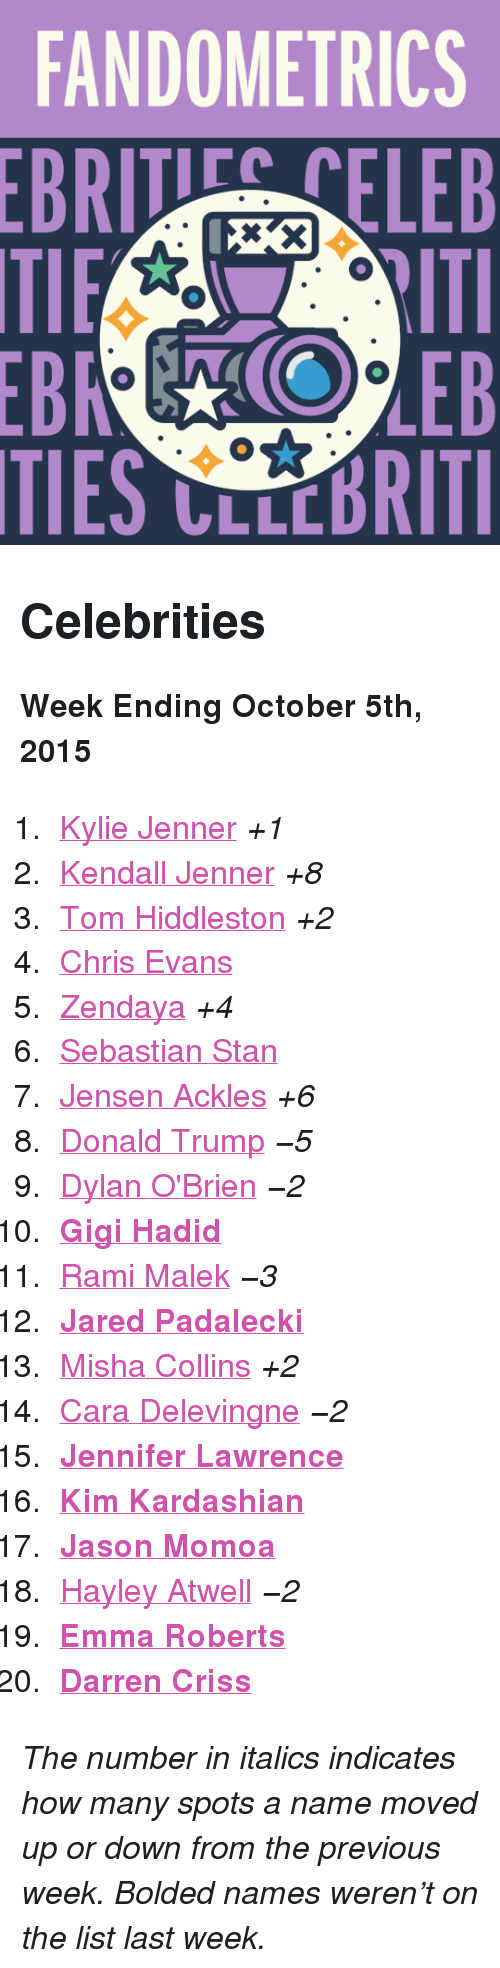 """Dylan O'Brien: FANDOMETRICS  BRTELEB  TIES CLLCBRITI <h2>Celebrities</h2><p><b>Week Ending October 5th, 2015</b></p><ol><li><a href=""""http://www.tumblr.com/search/kylie%20jenner"""">Kylie Jenner</a><i>+1</i></li>  <li><a href=""""http://www.tumblr.com/search/kendall%20jenner"""">Kendall Jenner</a><i>+8</i></li>  <li><a href=""""http://www.tumblr.com/search/tom%20hiddleston"""">Tom Hiddleston</a><i>+2</i></li>  <li><a href=""""http://www.tumblr.com/search/chris%20evans"""">Chris Evans</a></li>  <li><a href=""""http://www.tumblr.com/search/zendaya"""">Zendaya</a><i>+4</i></li>  <li><a href=""""http://www.tumblr.com/search/sebastian%20stan"""">Sebastian Stan</a></li>  <li><a href=""""http://www.tumblr.com/search/jensen%20ackles"""">Jensen Ackles</a><i>+6</i></li>  <li><a href=""""http://www.tumblr.com/search/donald%20trump"""">Donald Trump</a><i>−5</i></li>  <li><a href=""""http://www.tumblr.com/search/dylan%20o'brien"""">Dylan O'Brien</a><i>−2</i></li>  <li><a href=""""http://www.tumblr.com/search/gigi%20hadid""""><b>Gigi Hadid</b></a></li>  <li><a href=""""http://www.tumblr.com/search/rami%20malek"""">Rami Malek</a><i>−3</i></li>  <li><a href=""""http://www.tumblr.com/search/jared%20padalecki""""><b>Jared Padalecki</b></a></li>  <li><a href=""""http://www.tumblr.com/search/misha%20collins"""">Misha Collins</a><i>+2</i></li>  <li><a href=""""http://www.tumblr.com/search/cara%20delevingne"""">Cara Delevingne</a><i>−2</i></li>  <li><a href=""""http://www.tumblr.com/search/jennifer%20lawrence""""><b>Jennifer Lawrence</b></a></li>  <li><a href=""""http://www.tumblr.com/search/kim%20kardashian""""><b>Kim Kardashian</b></a></li>  <li><a href=""""http://www.tumblr.com/search/jason%20momoa""""><b>Jason Momoa</b></a></li>  <li><a href=""""http://www.tumblr.com/search/hayley%20atwell"""">Hayley Atwell</a><i>−2</i></li>  <li><a href=""""http://www.tumblr.com/search/emma%20roberts""""><b>Emma Roberts</b></a></li>  <li><a href=""""http://www.tumblr.com/search/darren%20criss""""><b>Darren Criss</b></a></li></ol><p><i>The number in italics indicates how many spots a name moved up or down from the p"""